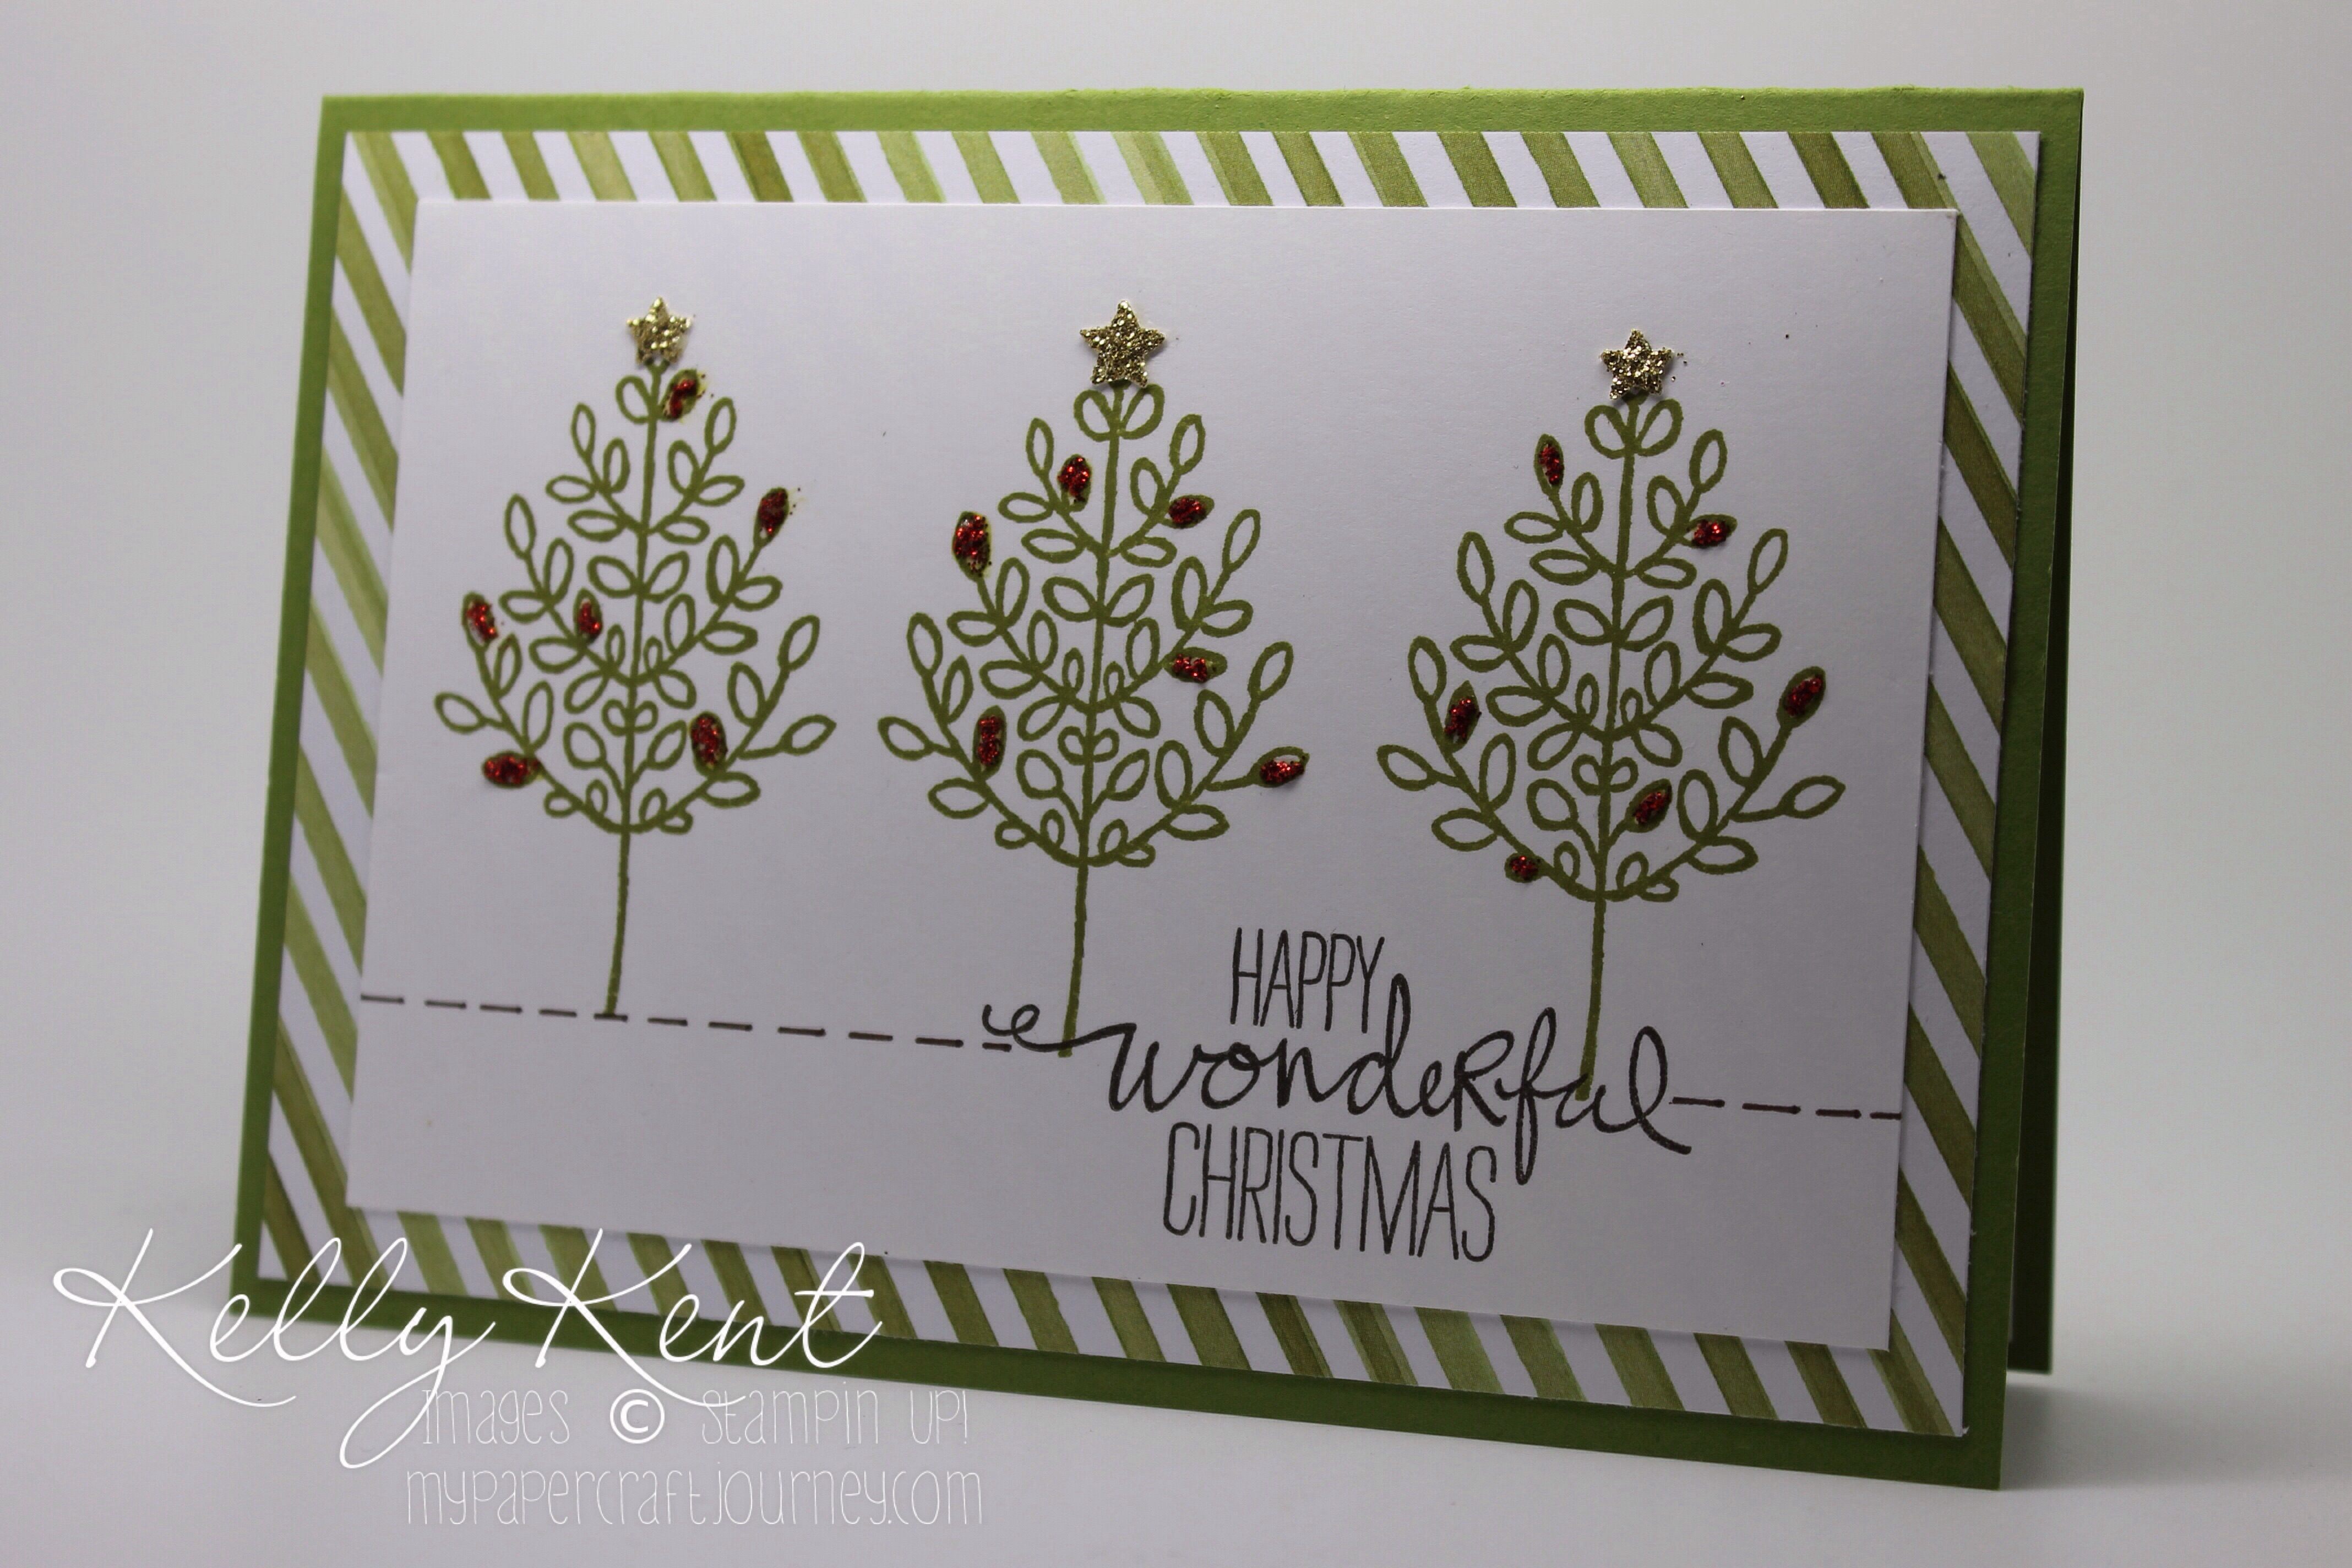 Lighthearted Leaves - Dazzling Christmas Trees. Kelly Kent - mypapercraftjourney.com.